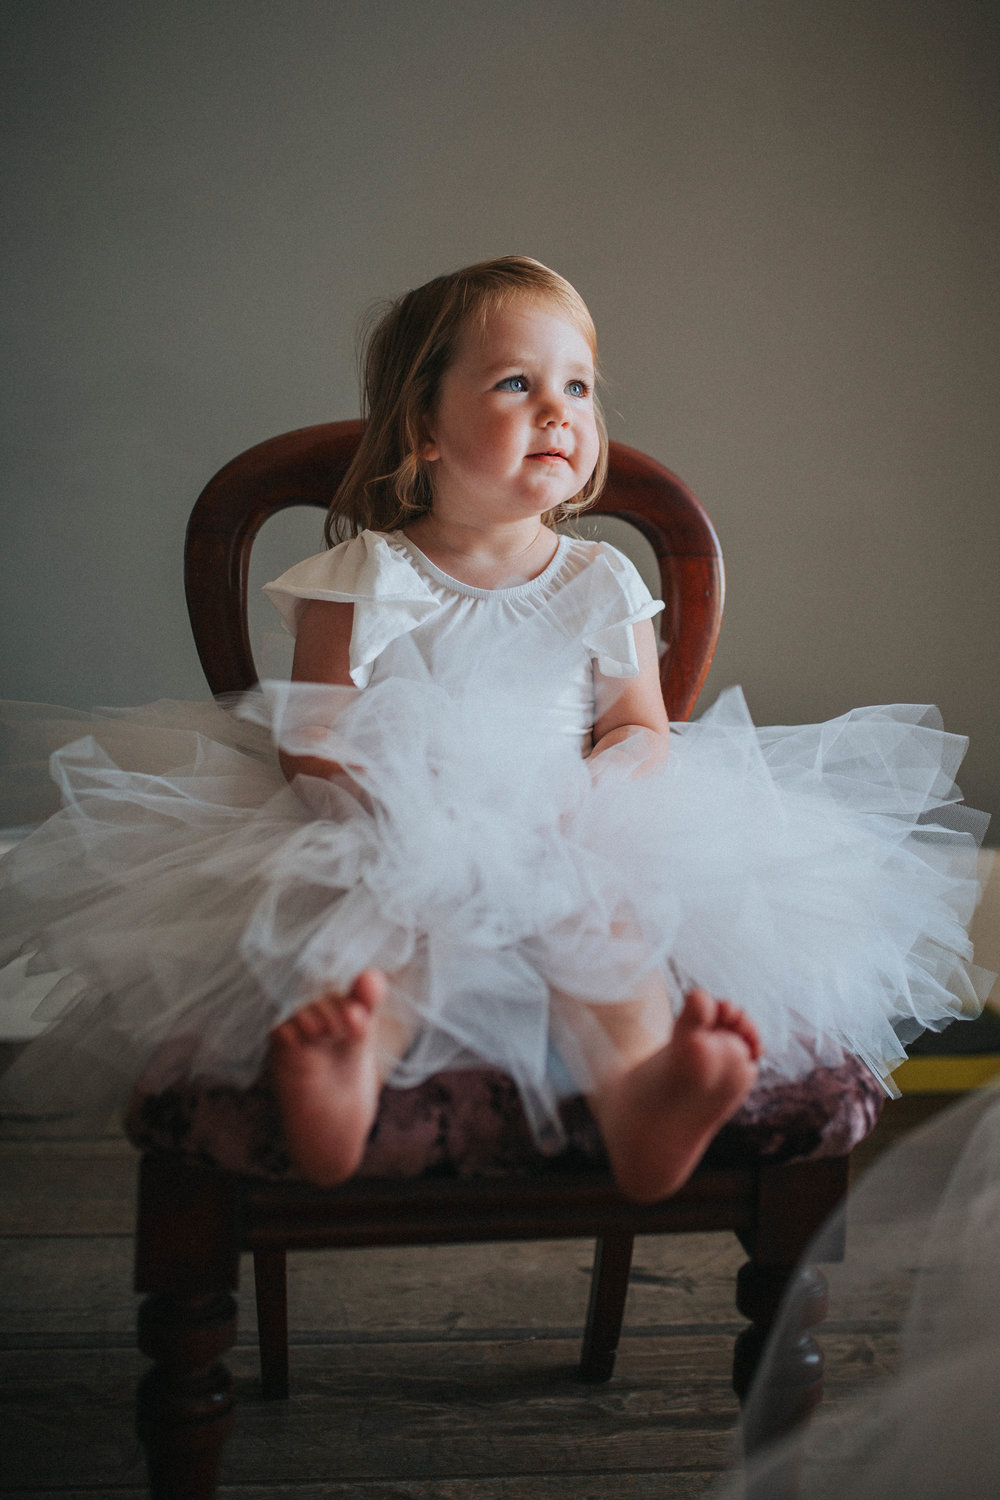 natural wedding photography york yorkshire flowergirl cute